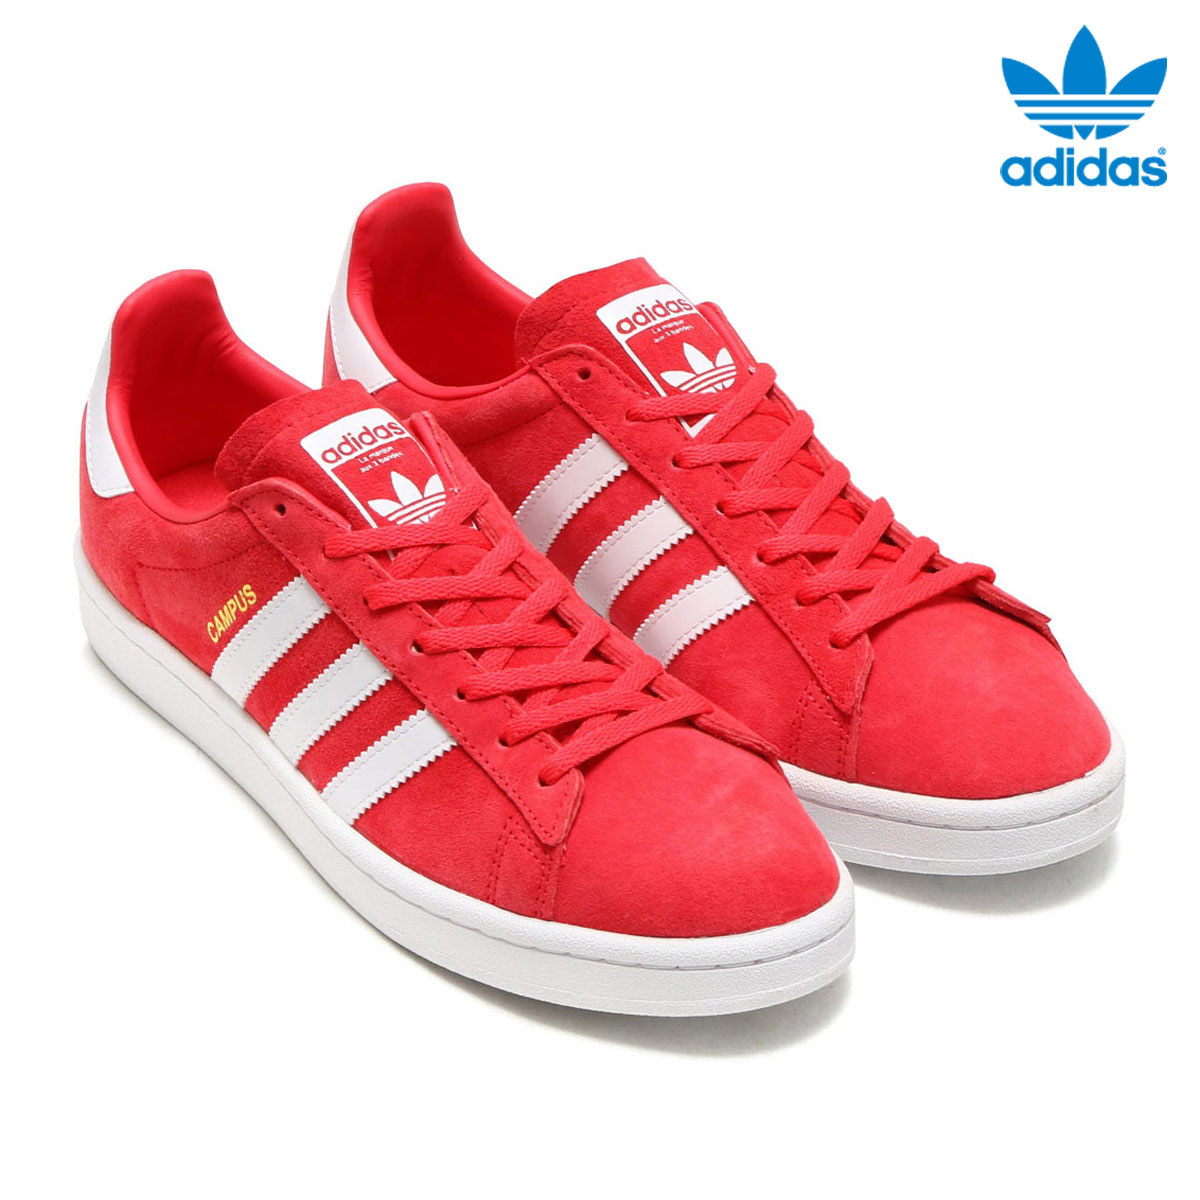 Adidas Camppus Shoes Core Pink